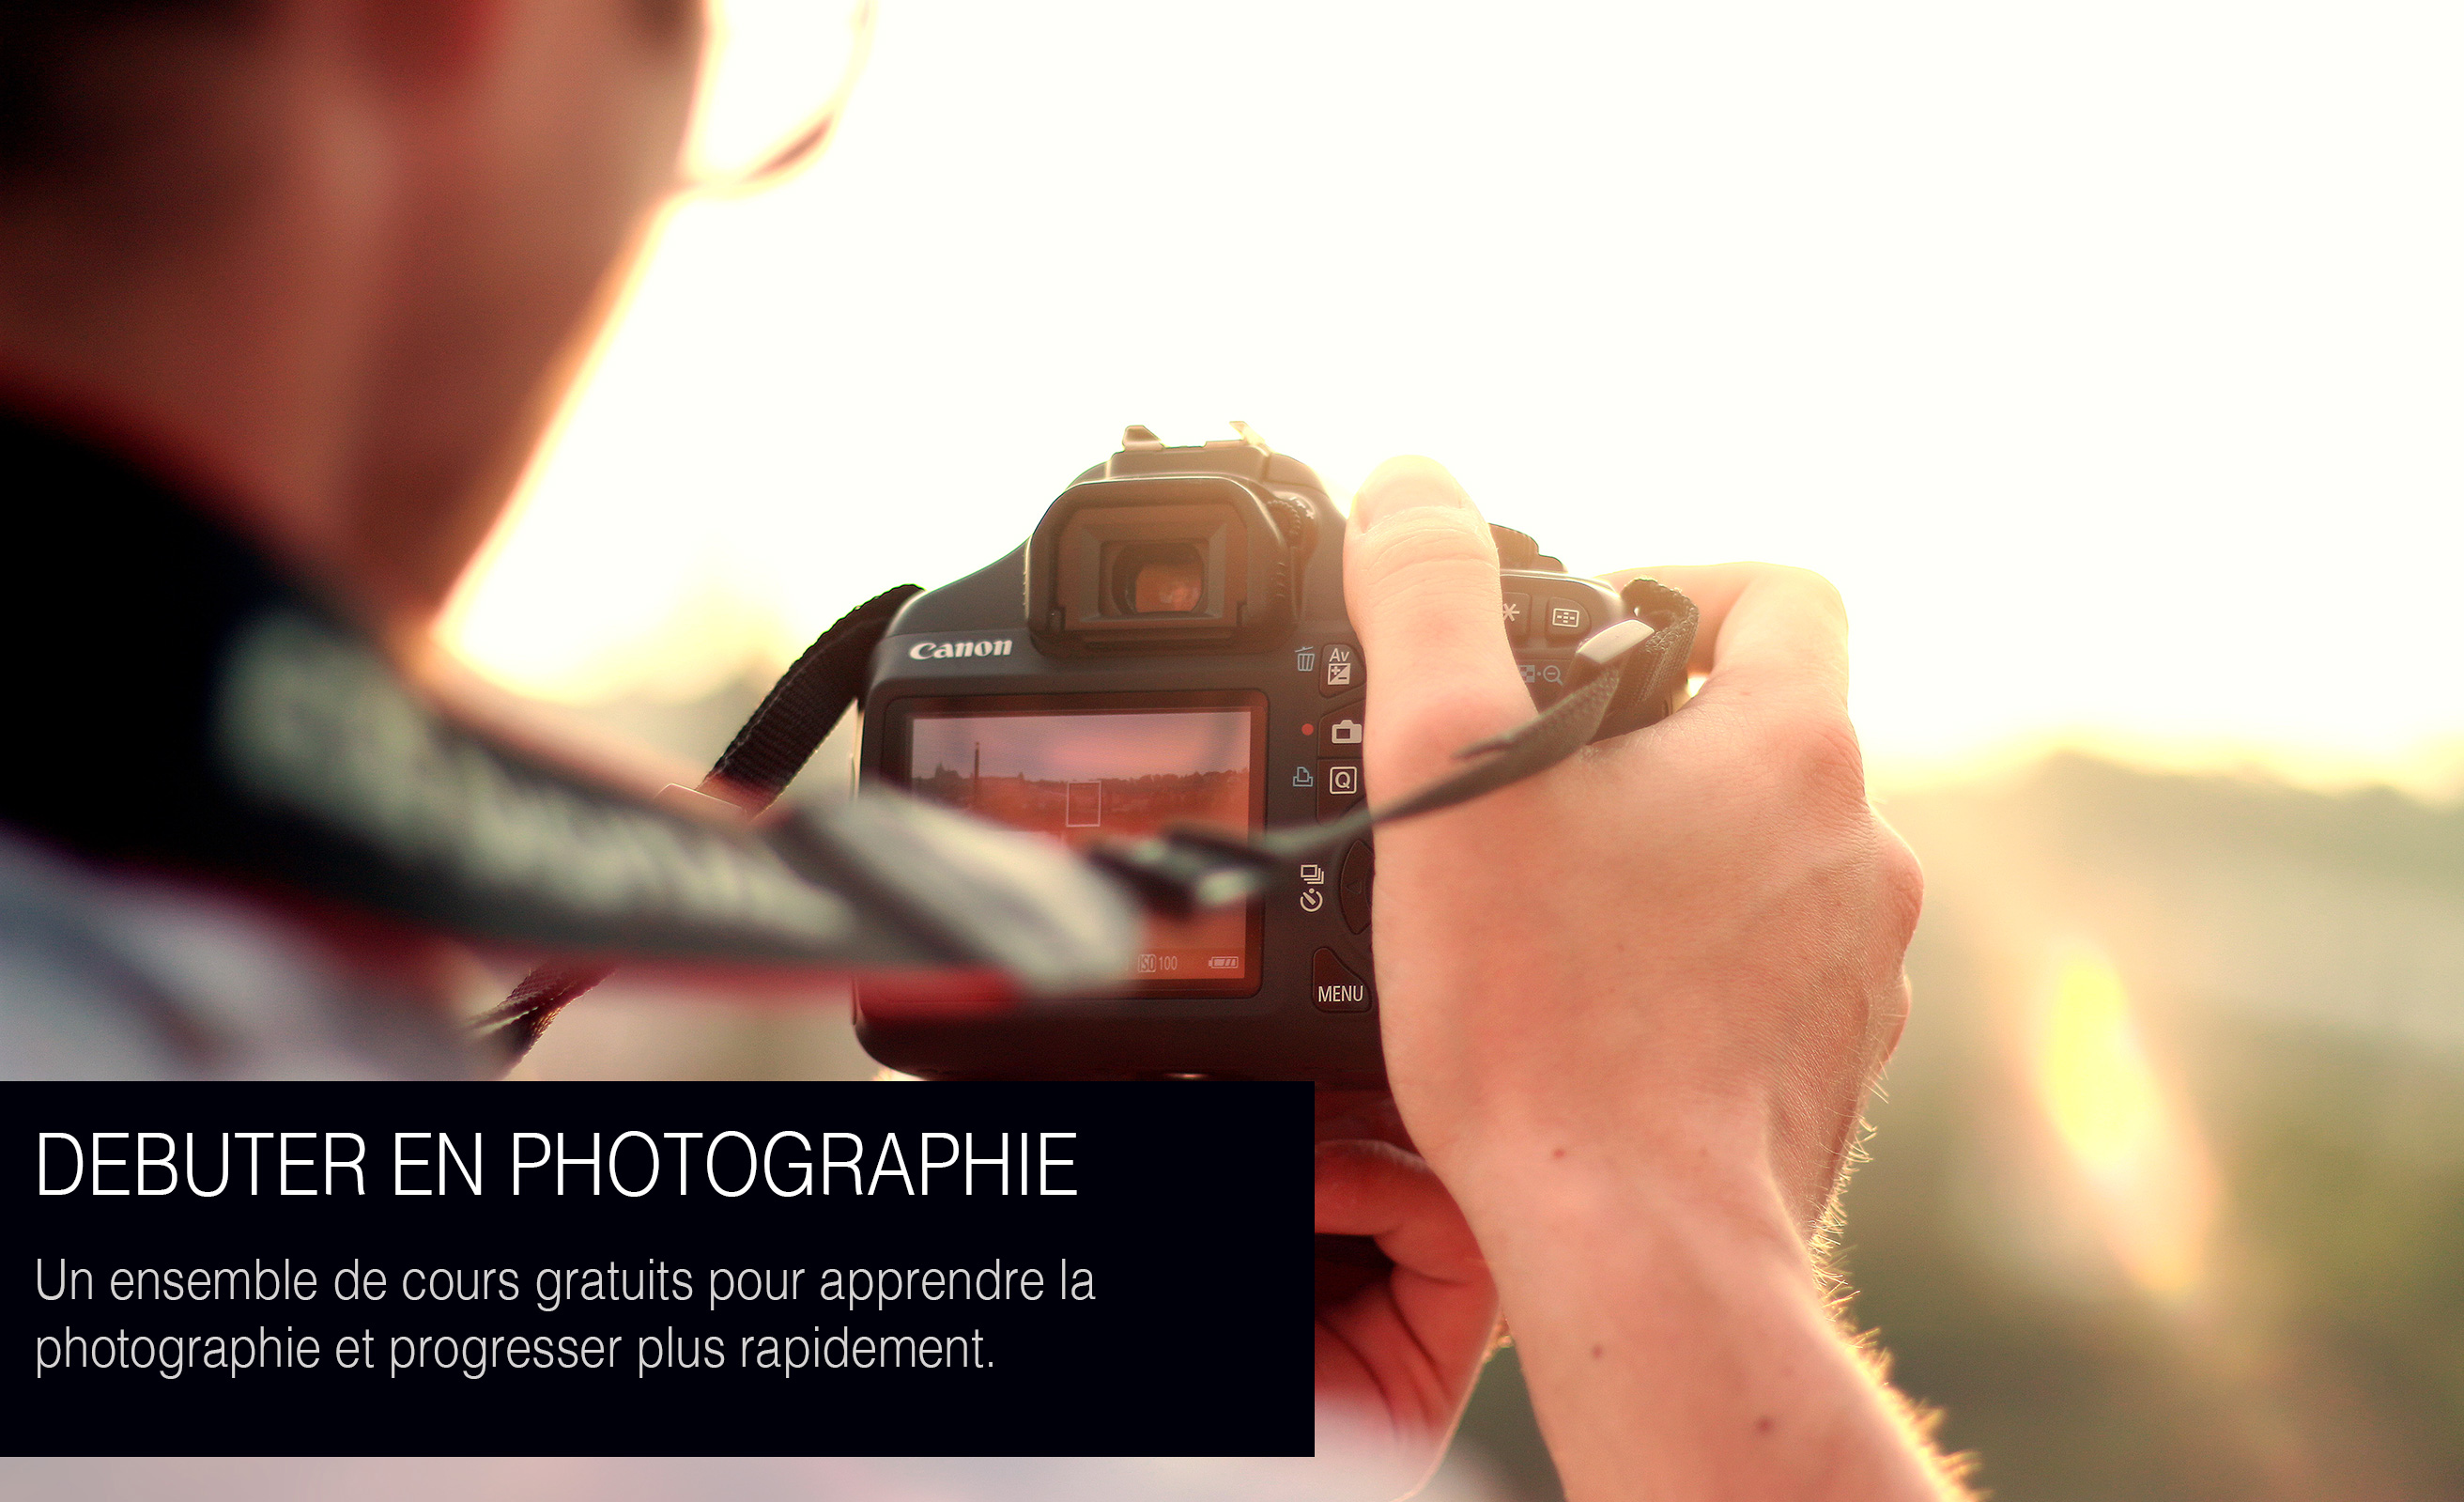 ApprendreLaPhotographie_categorie_ressources